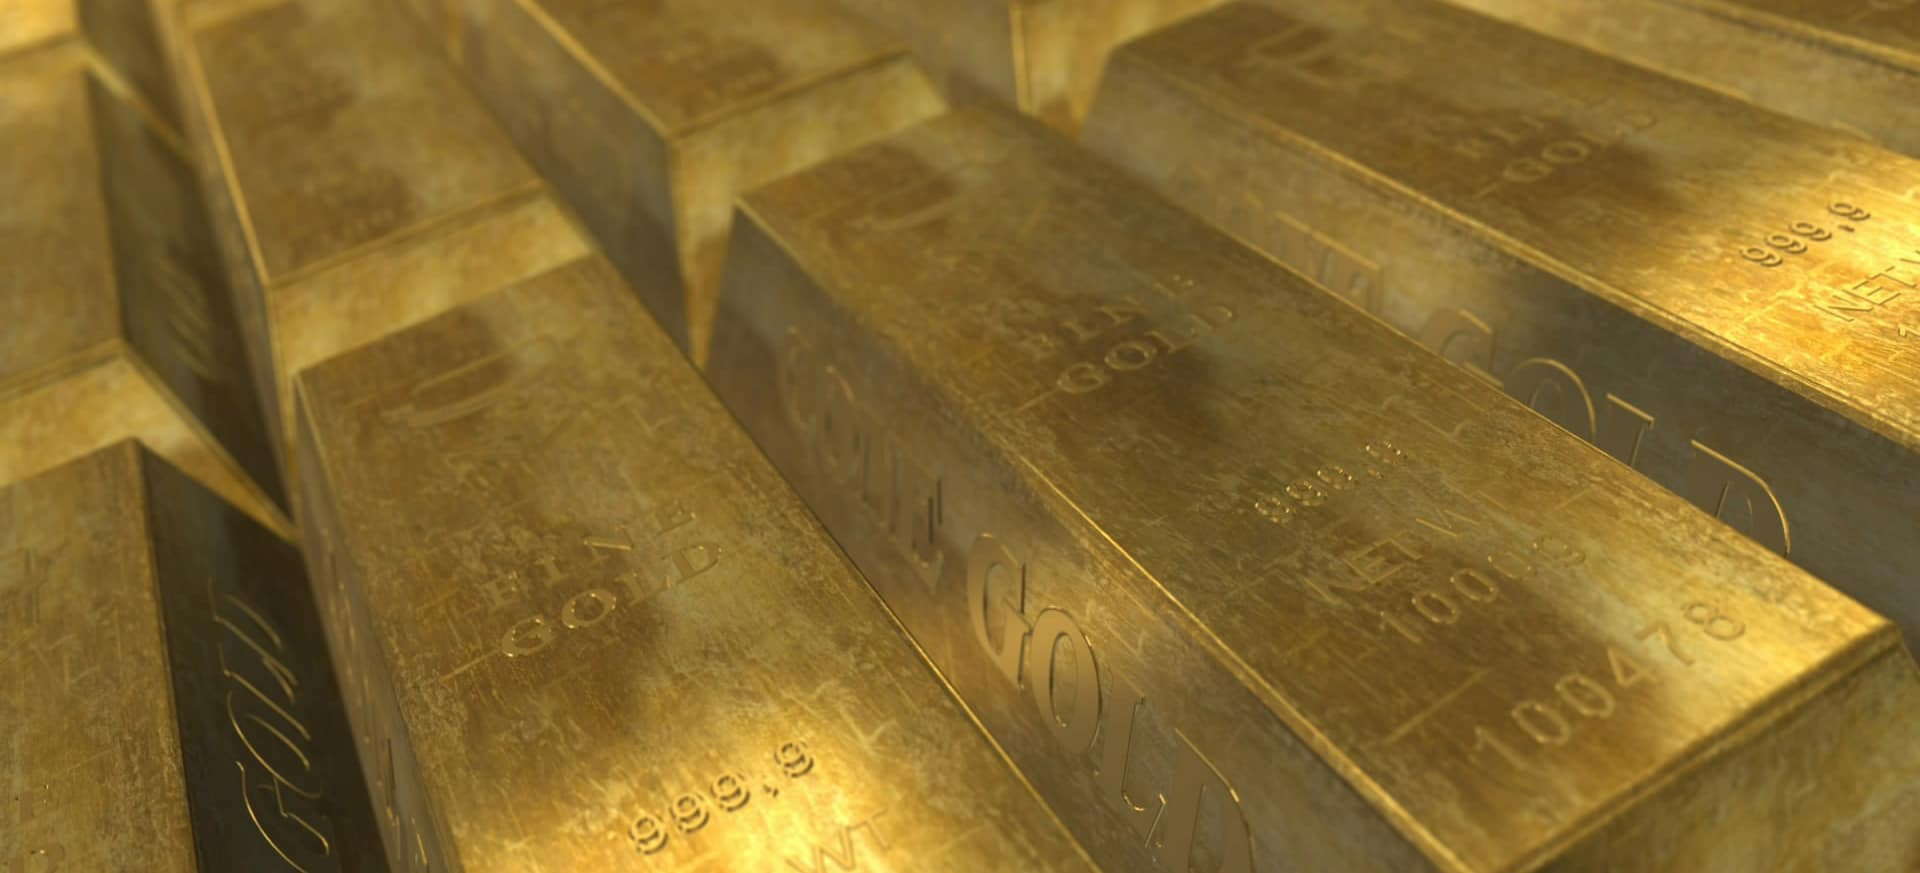 BitGold Goes Live, Looks to Make Gold a Blockchain Currency